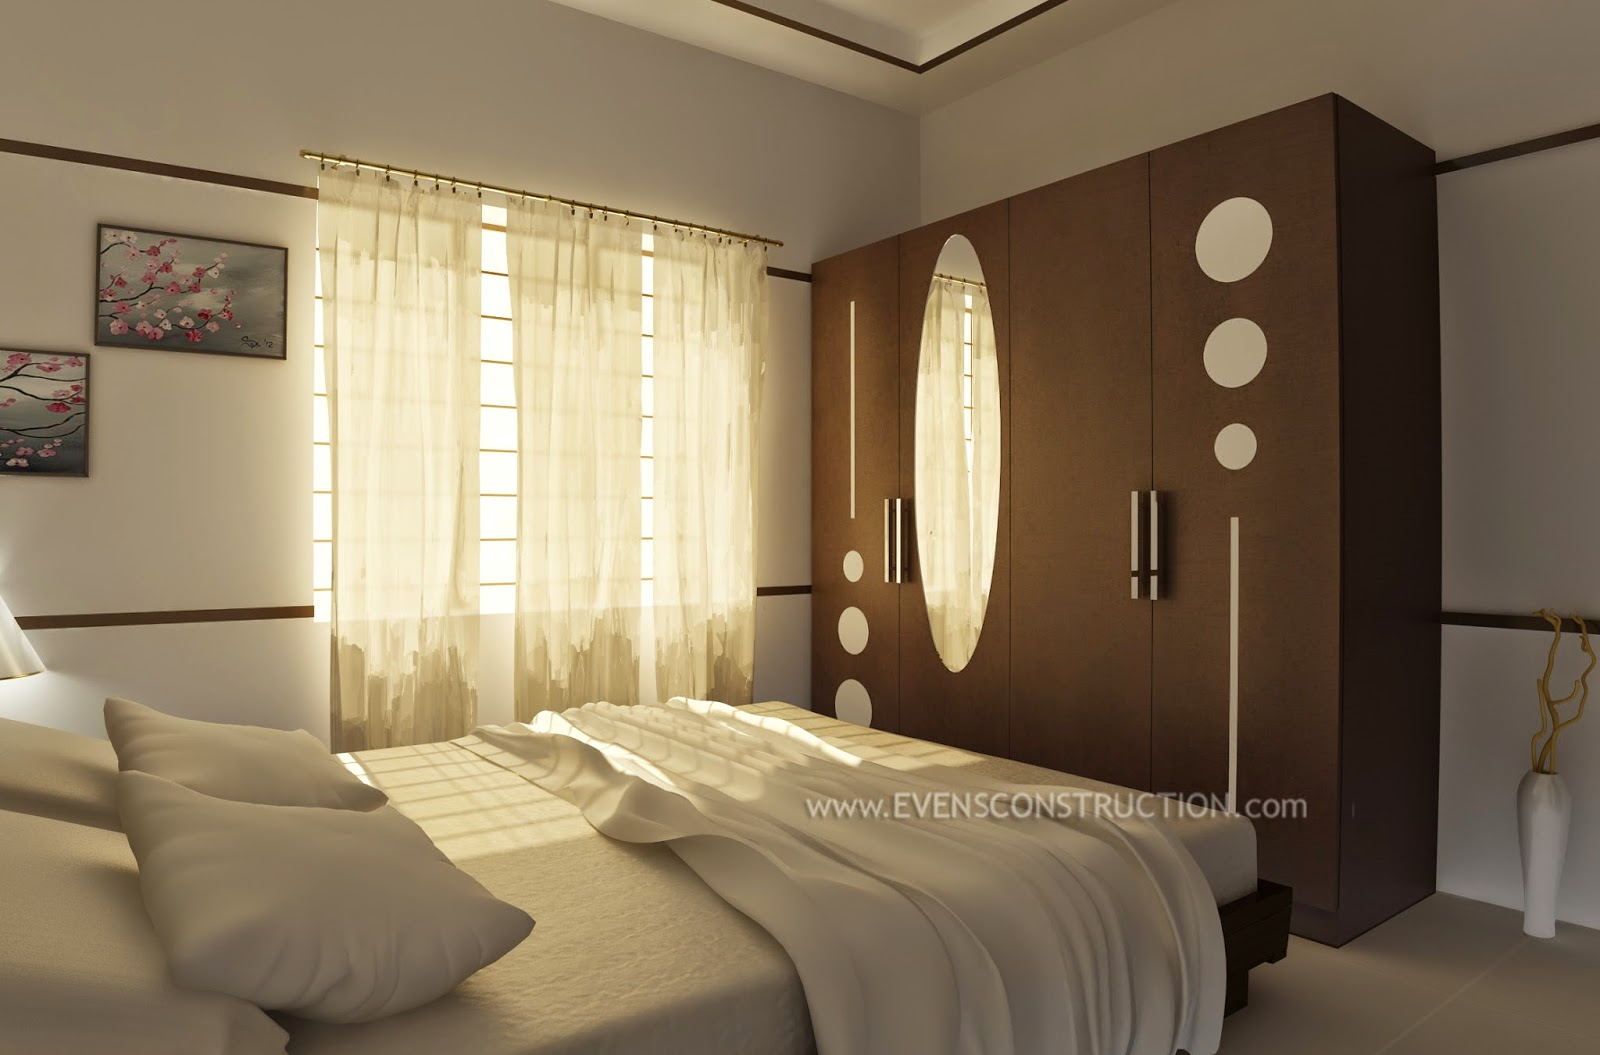 New 23 Interior Design For Bedroom In Kerala Inspirational